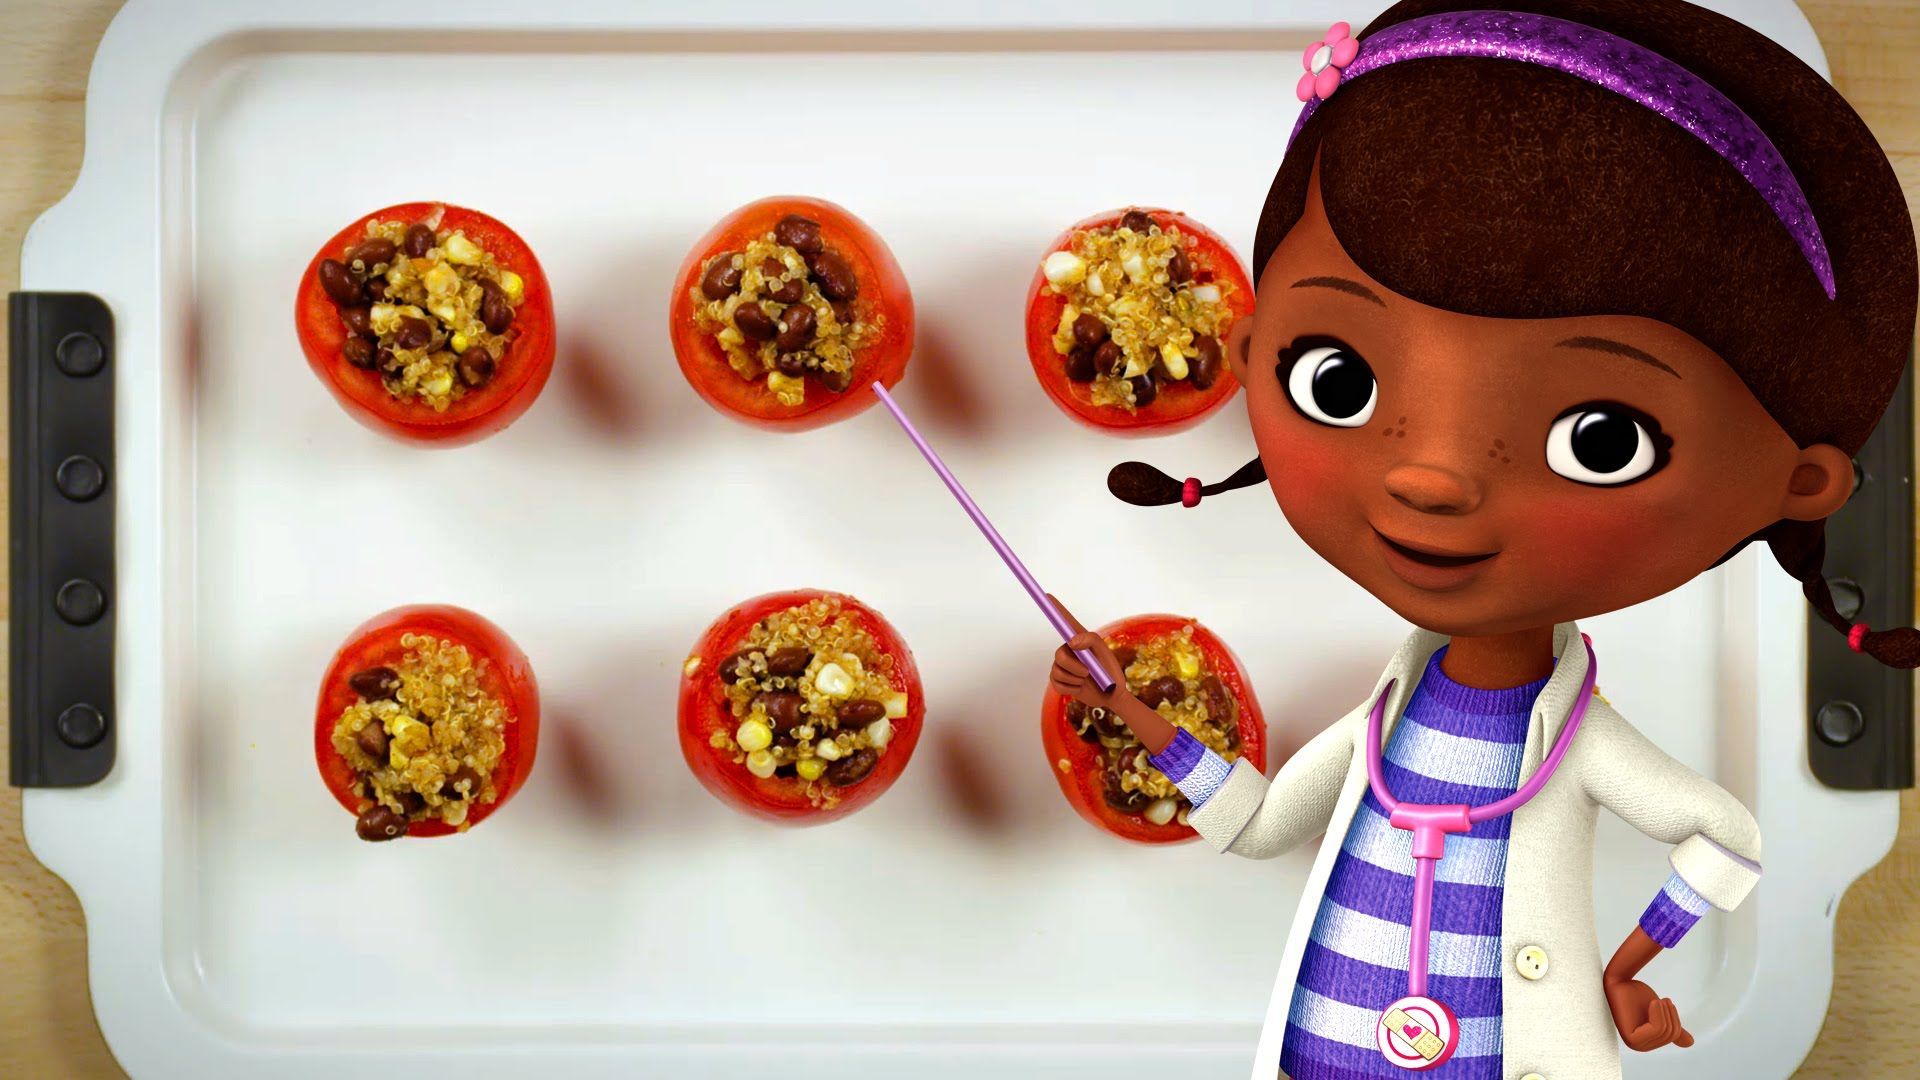 Doc Mcstuffins Quinoa Stuffed Tomatoes Dishes By Disney Youtube Tomato Dishes Disney Food Quinoa